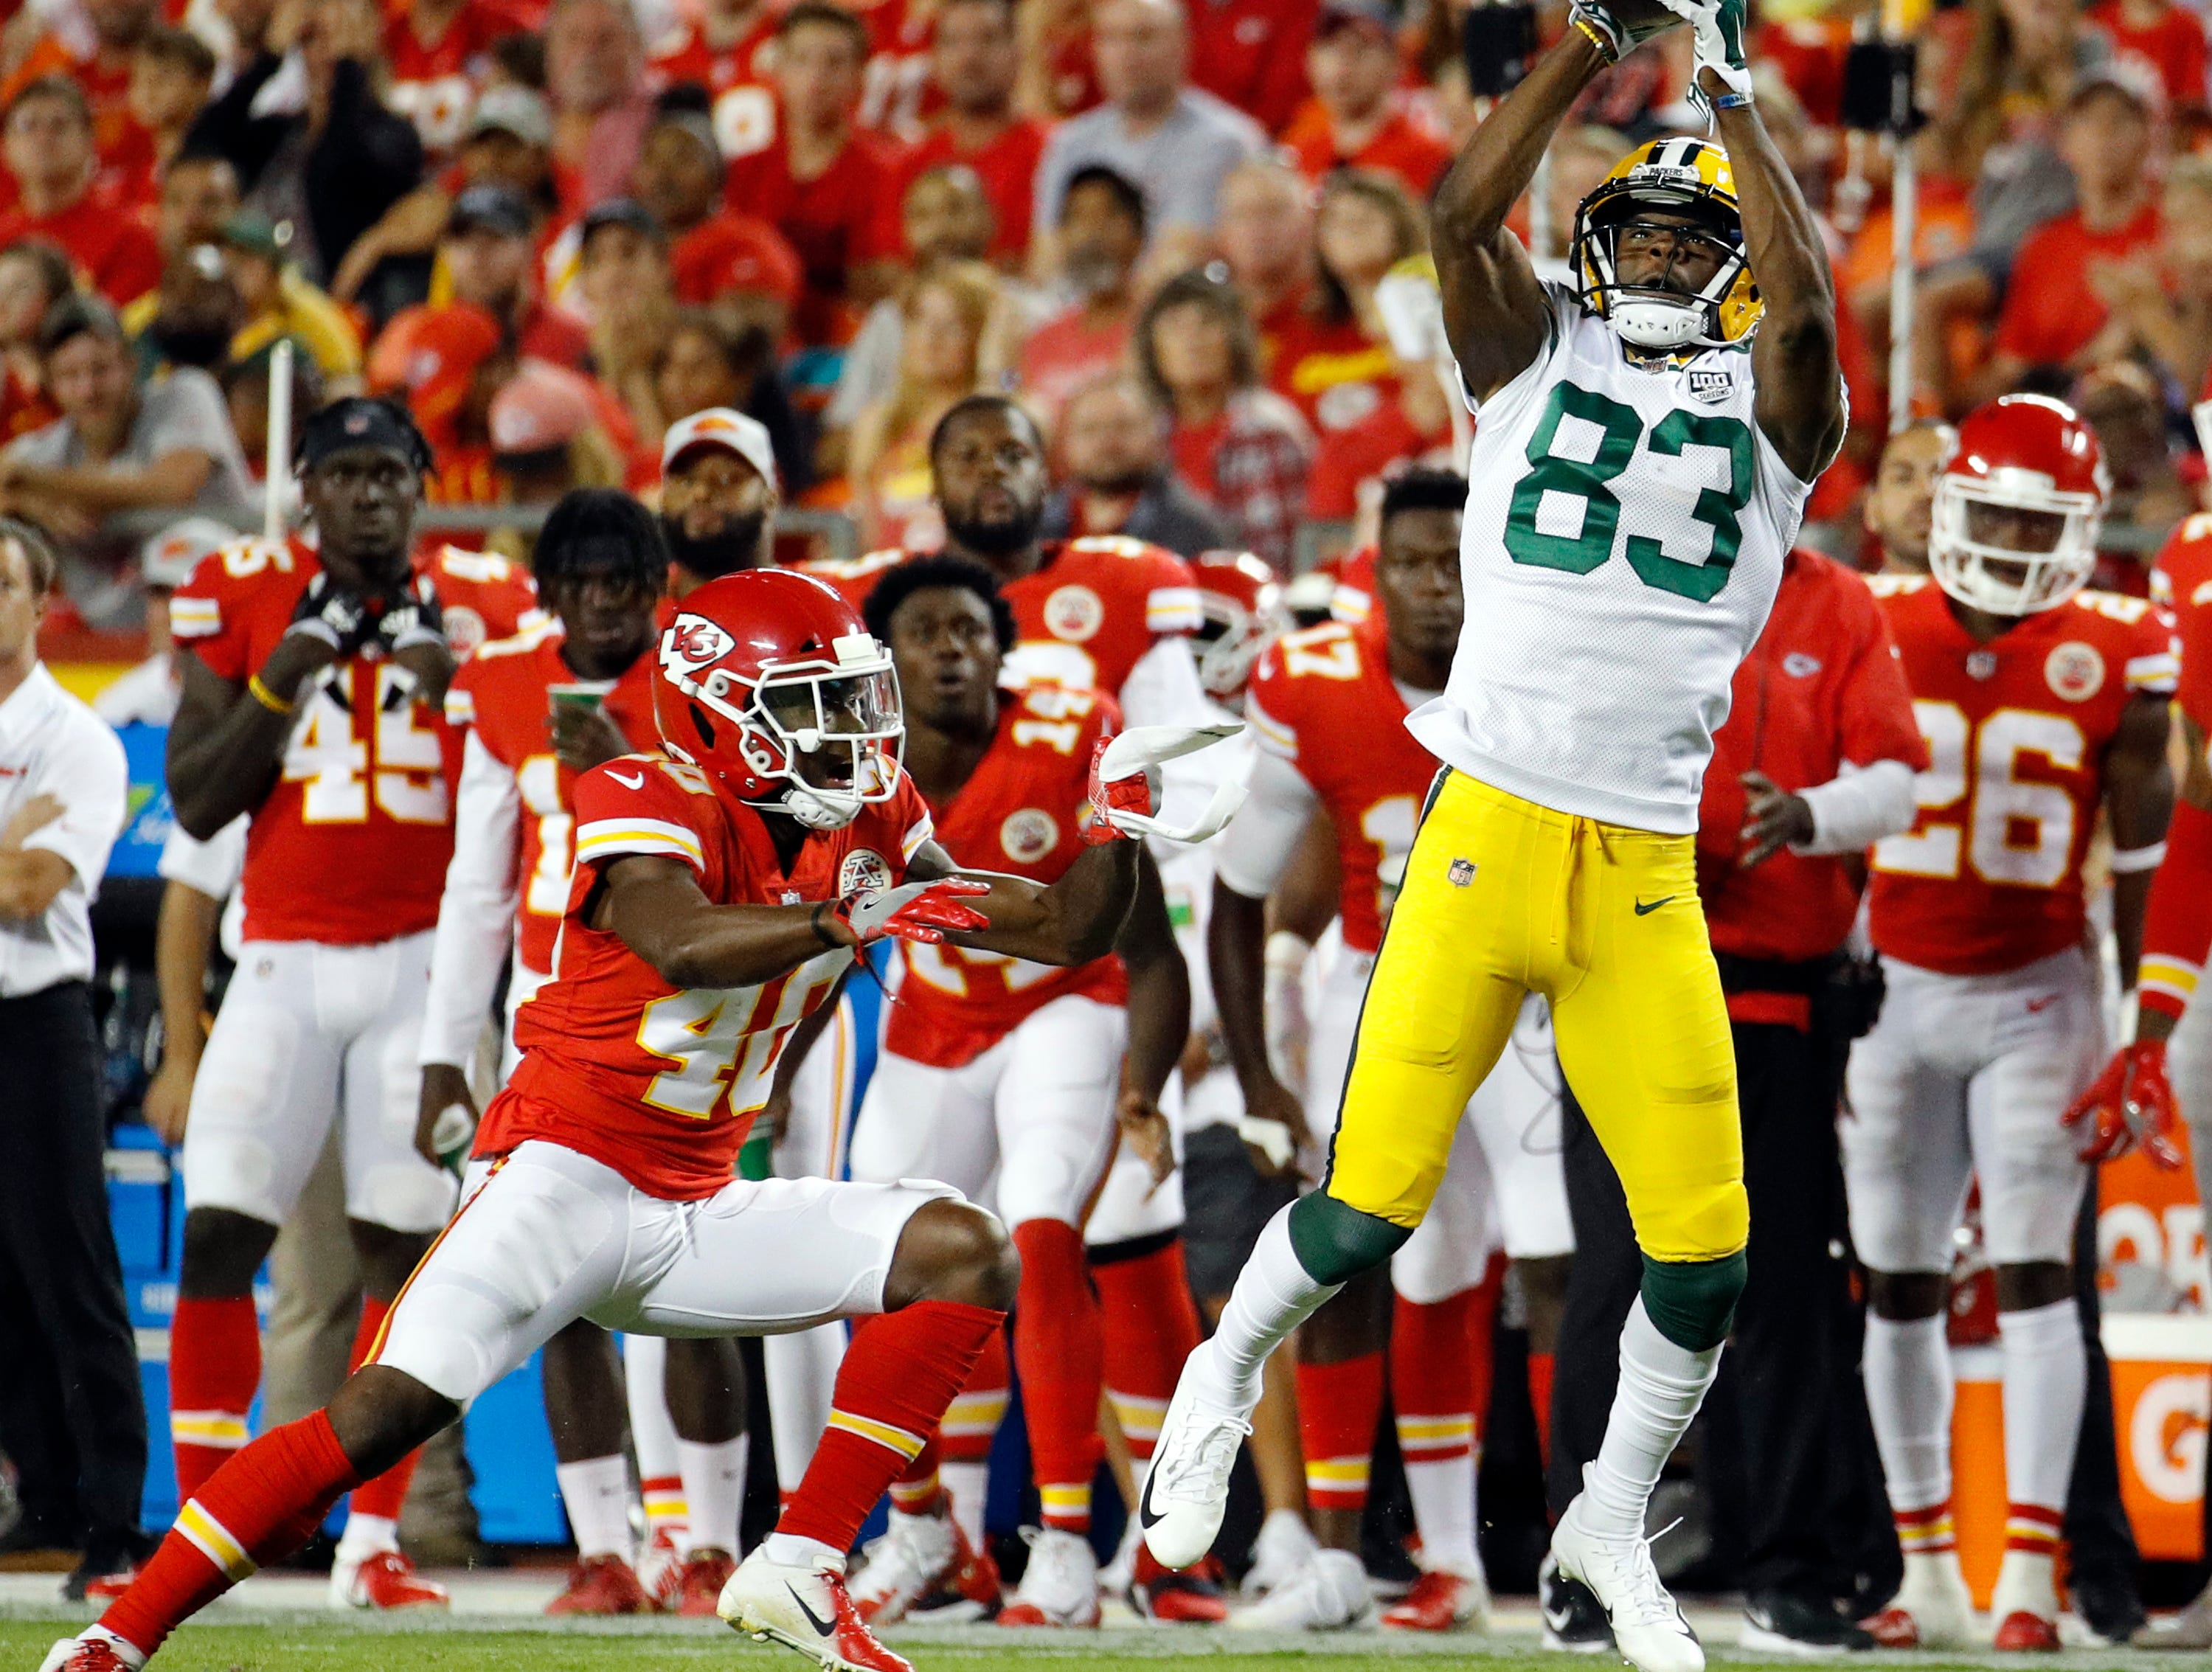 Green Bay Packers wide receiver Marquez Valdes-Scantling (83) makes a catch against Kansas City Chiefs cornerback D'Montre Wade (40) during the first half of an NFL preseason football game in Kansas City, Mo., Thursday, Aug. 30, 2018.